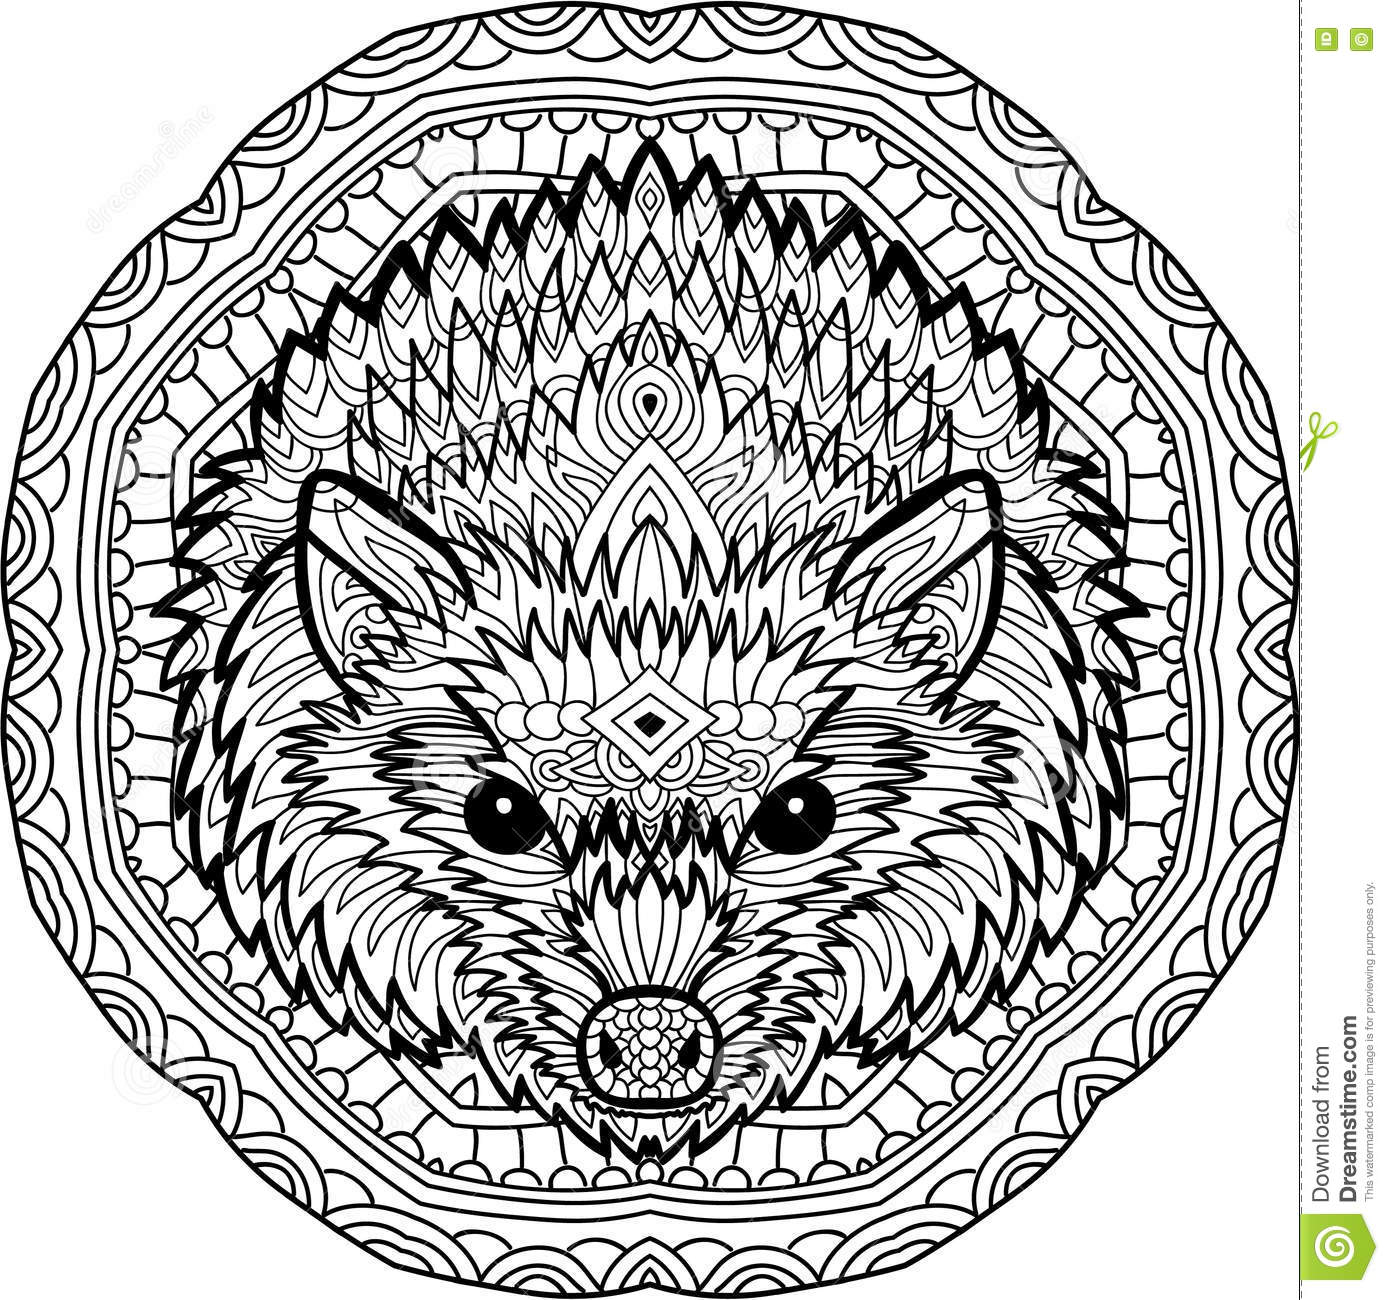 Coloring page for adults stern hedgehog on a background of a circular